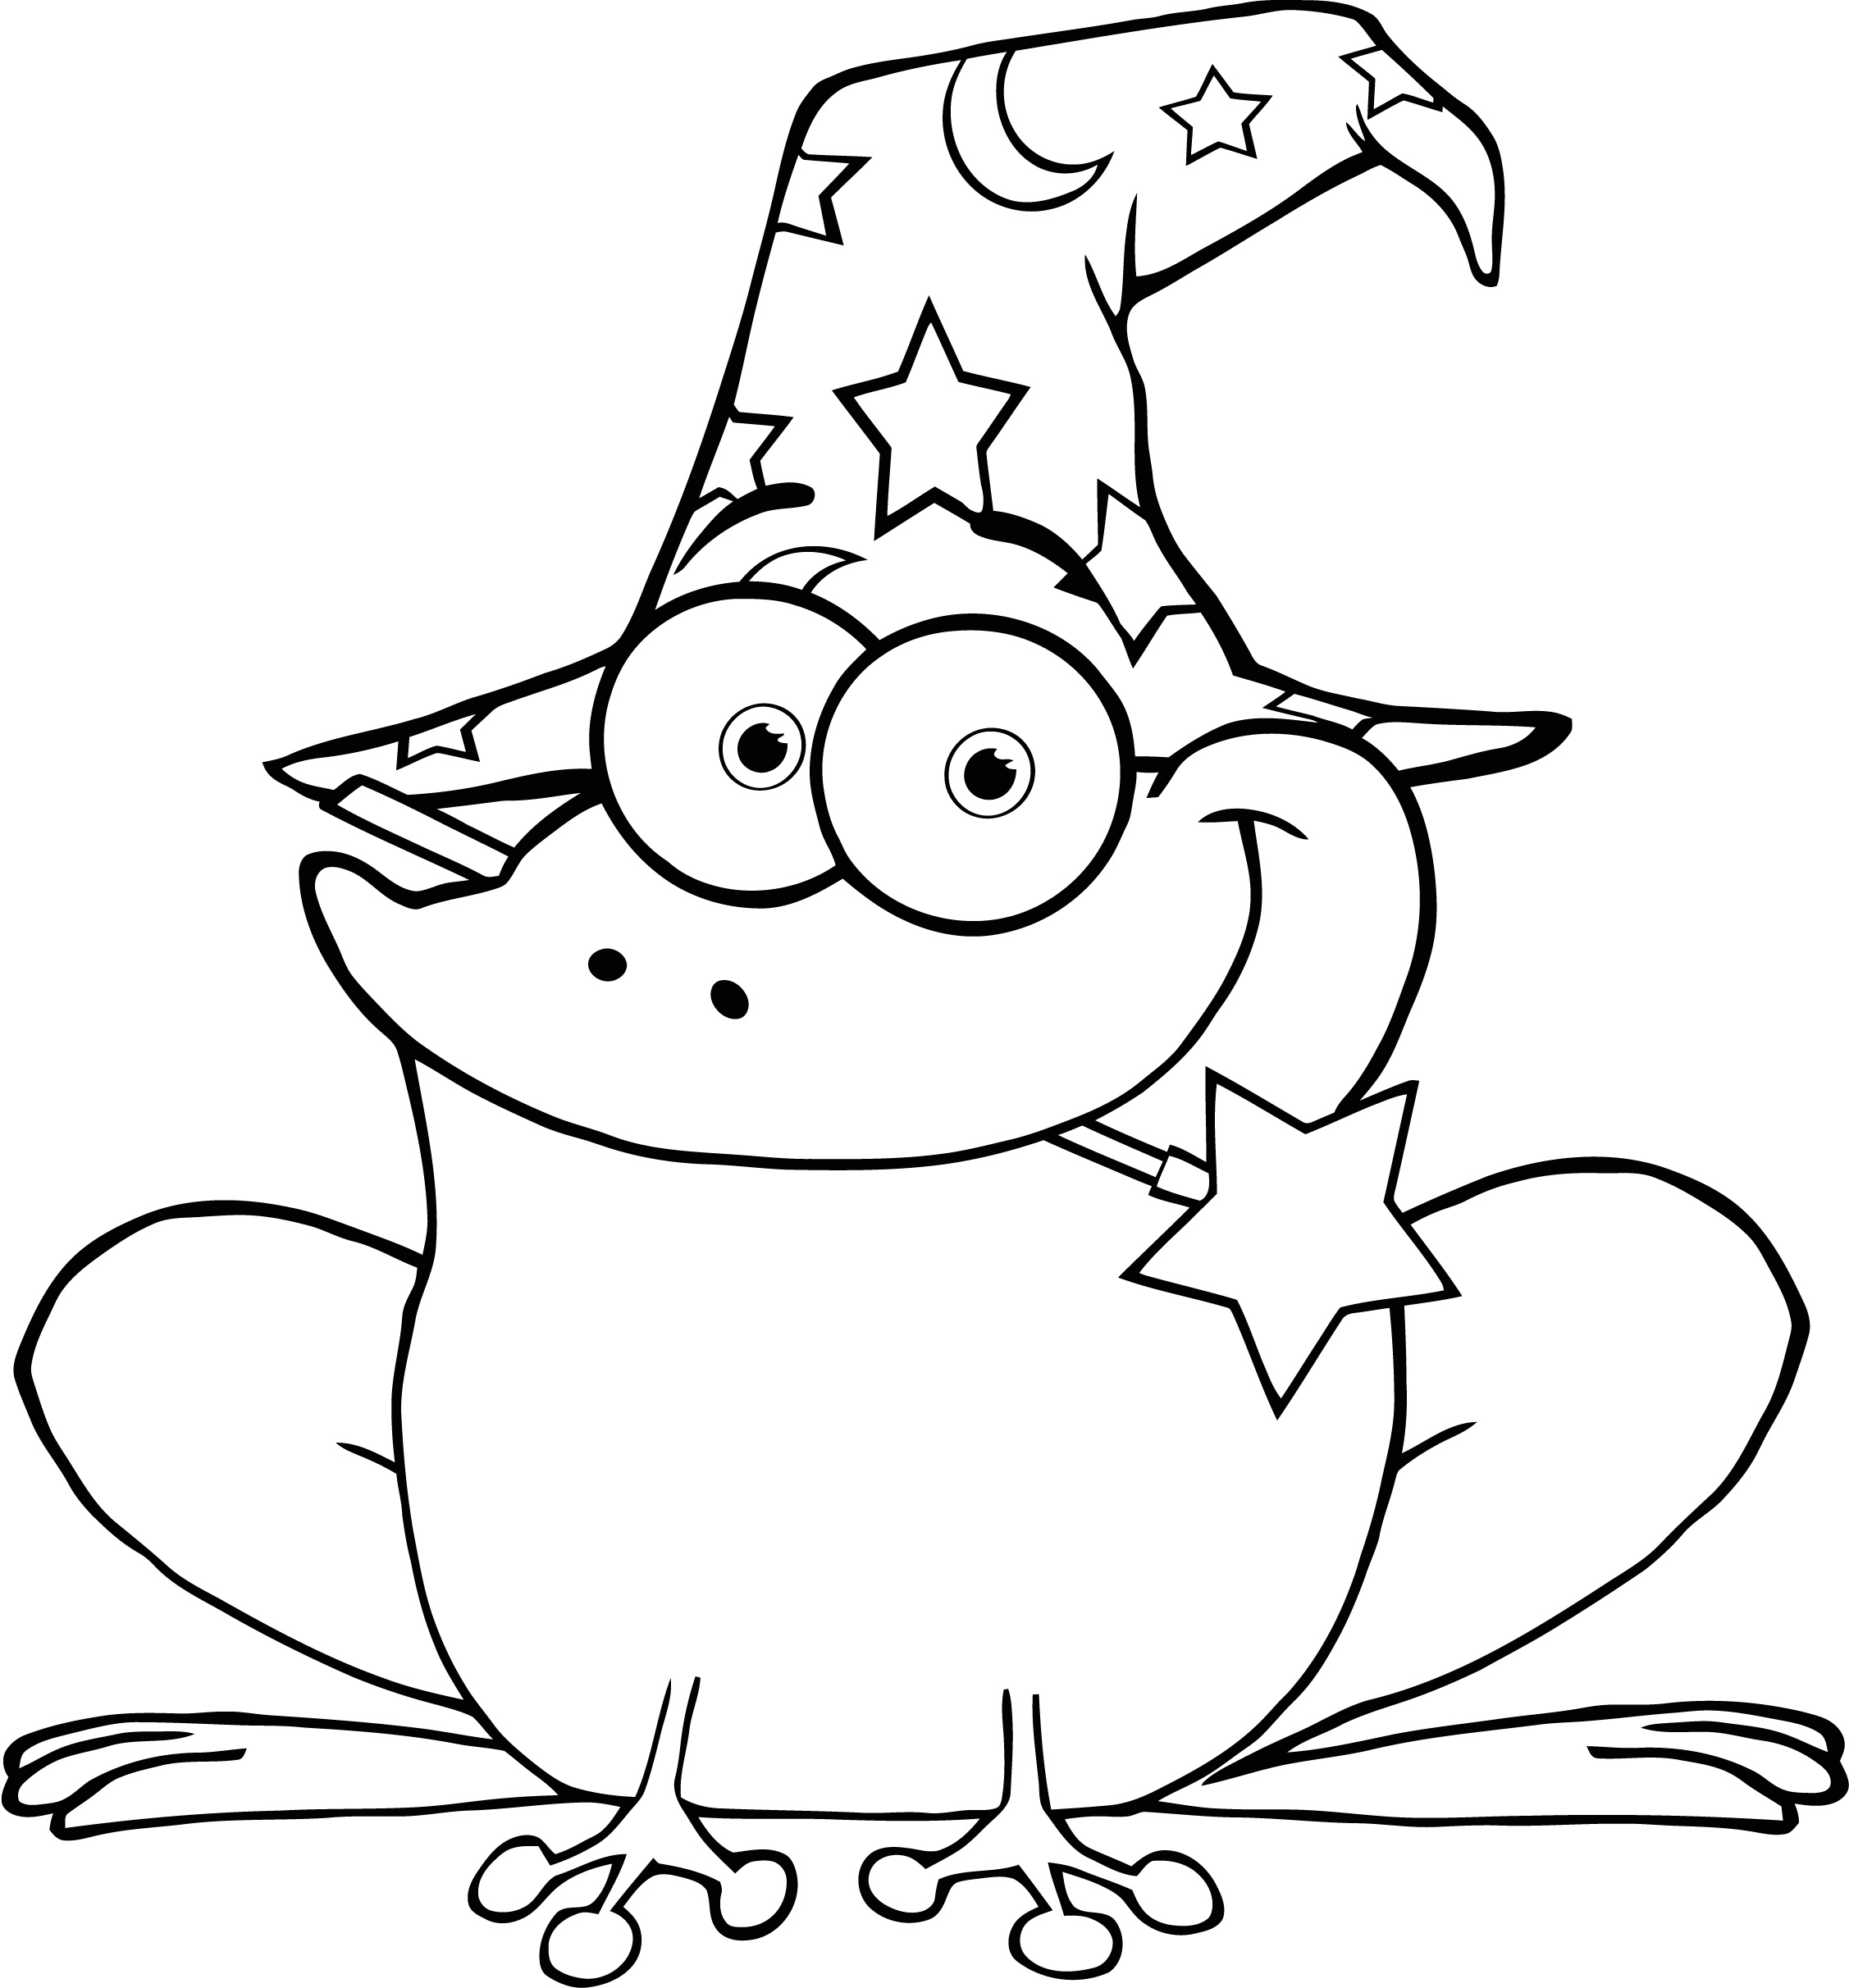 2254x2424 Magic Tree House Coloring Pages Jack